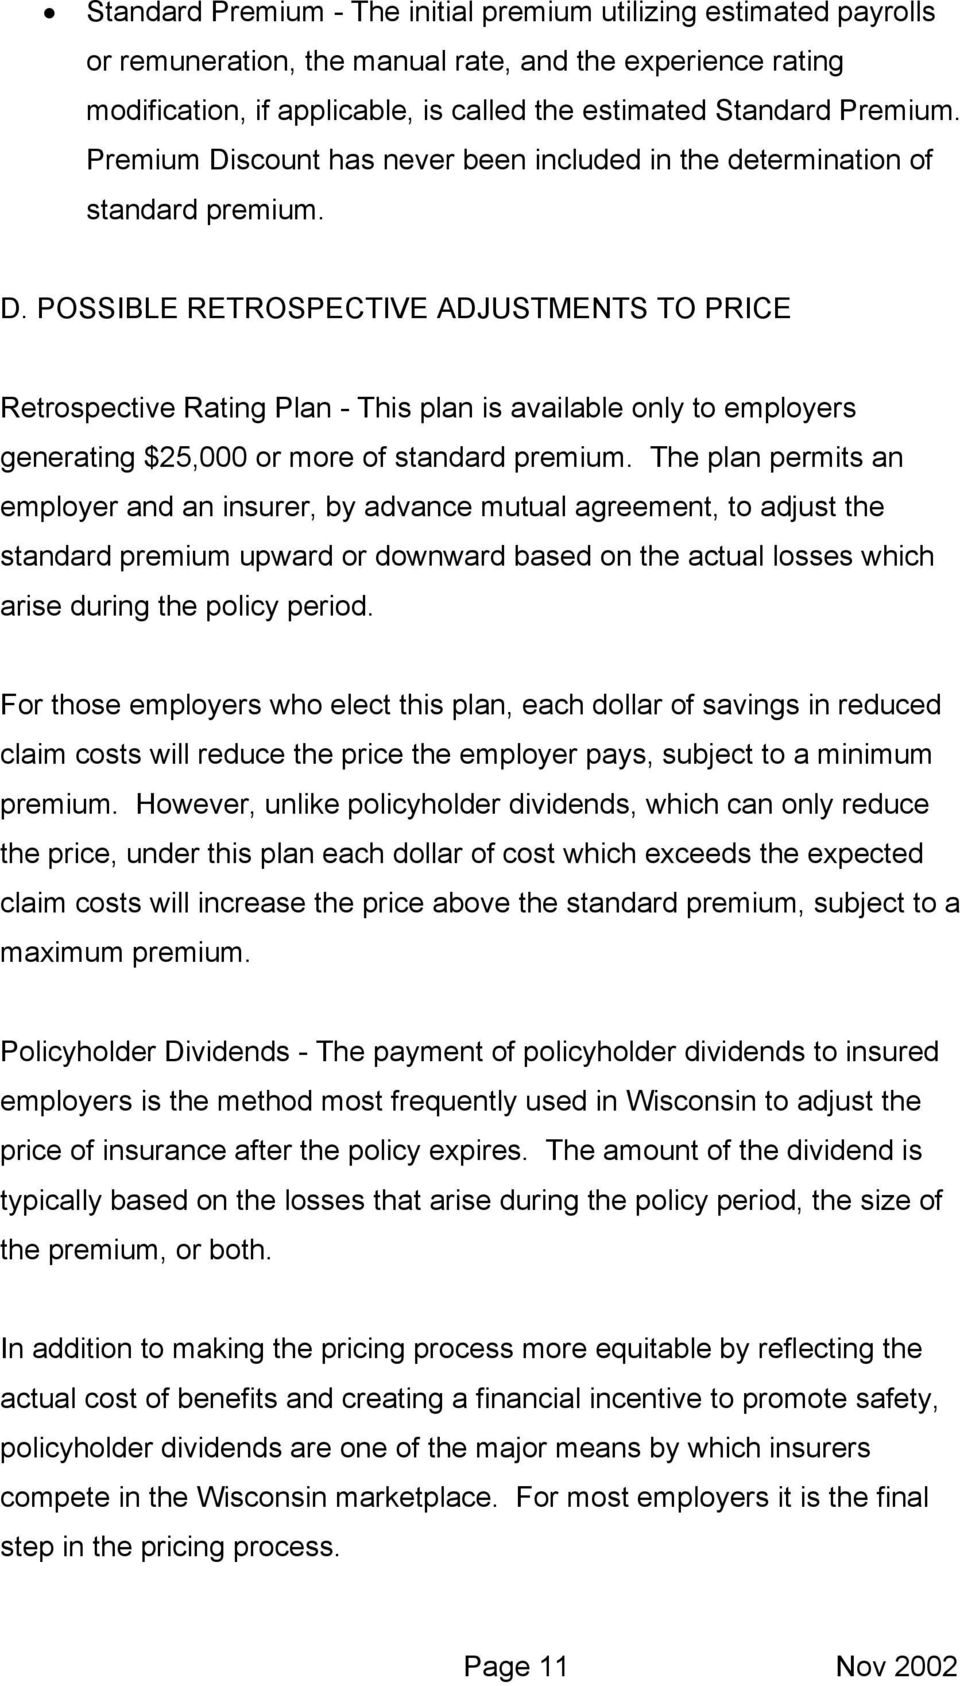 The plan permits an employer and an insurer, by advance mutual agreement, to adjust the standard premium upward or downward based on the actual losses which arise during the policy period.